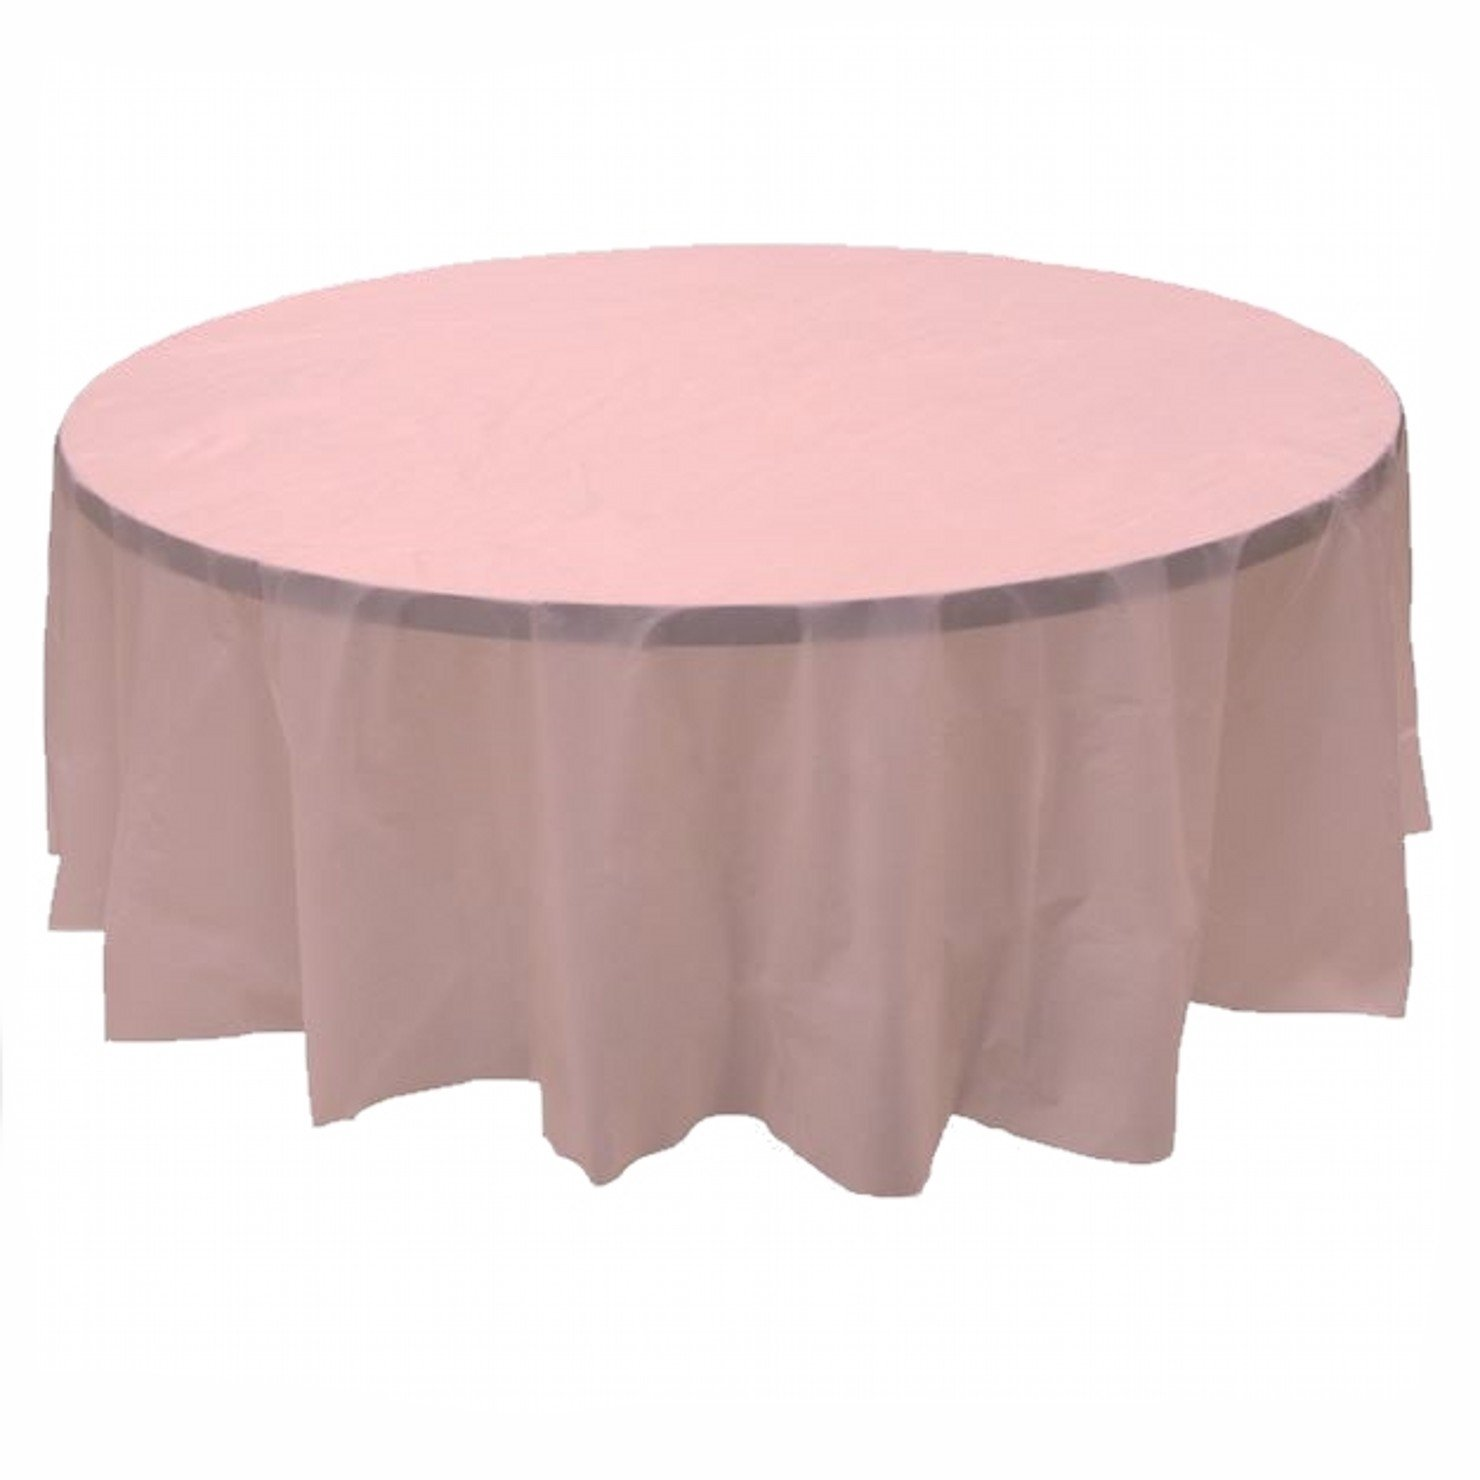 24 pcs (1 case) of Plastic Heavy Duty Premium Round tablecloths 84'' Diameter Table Cover - Pink by CC